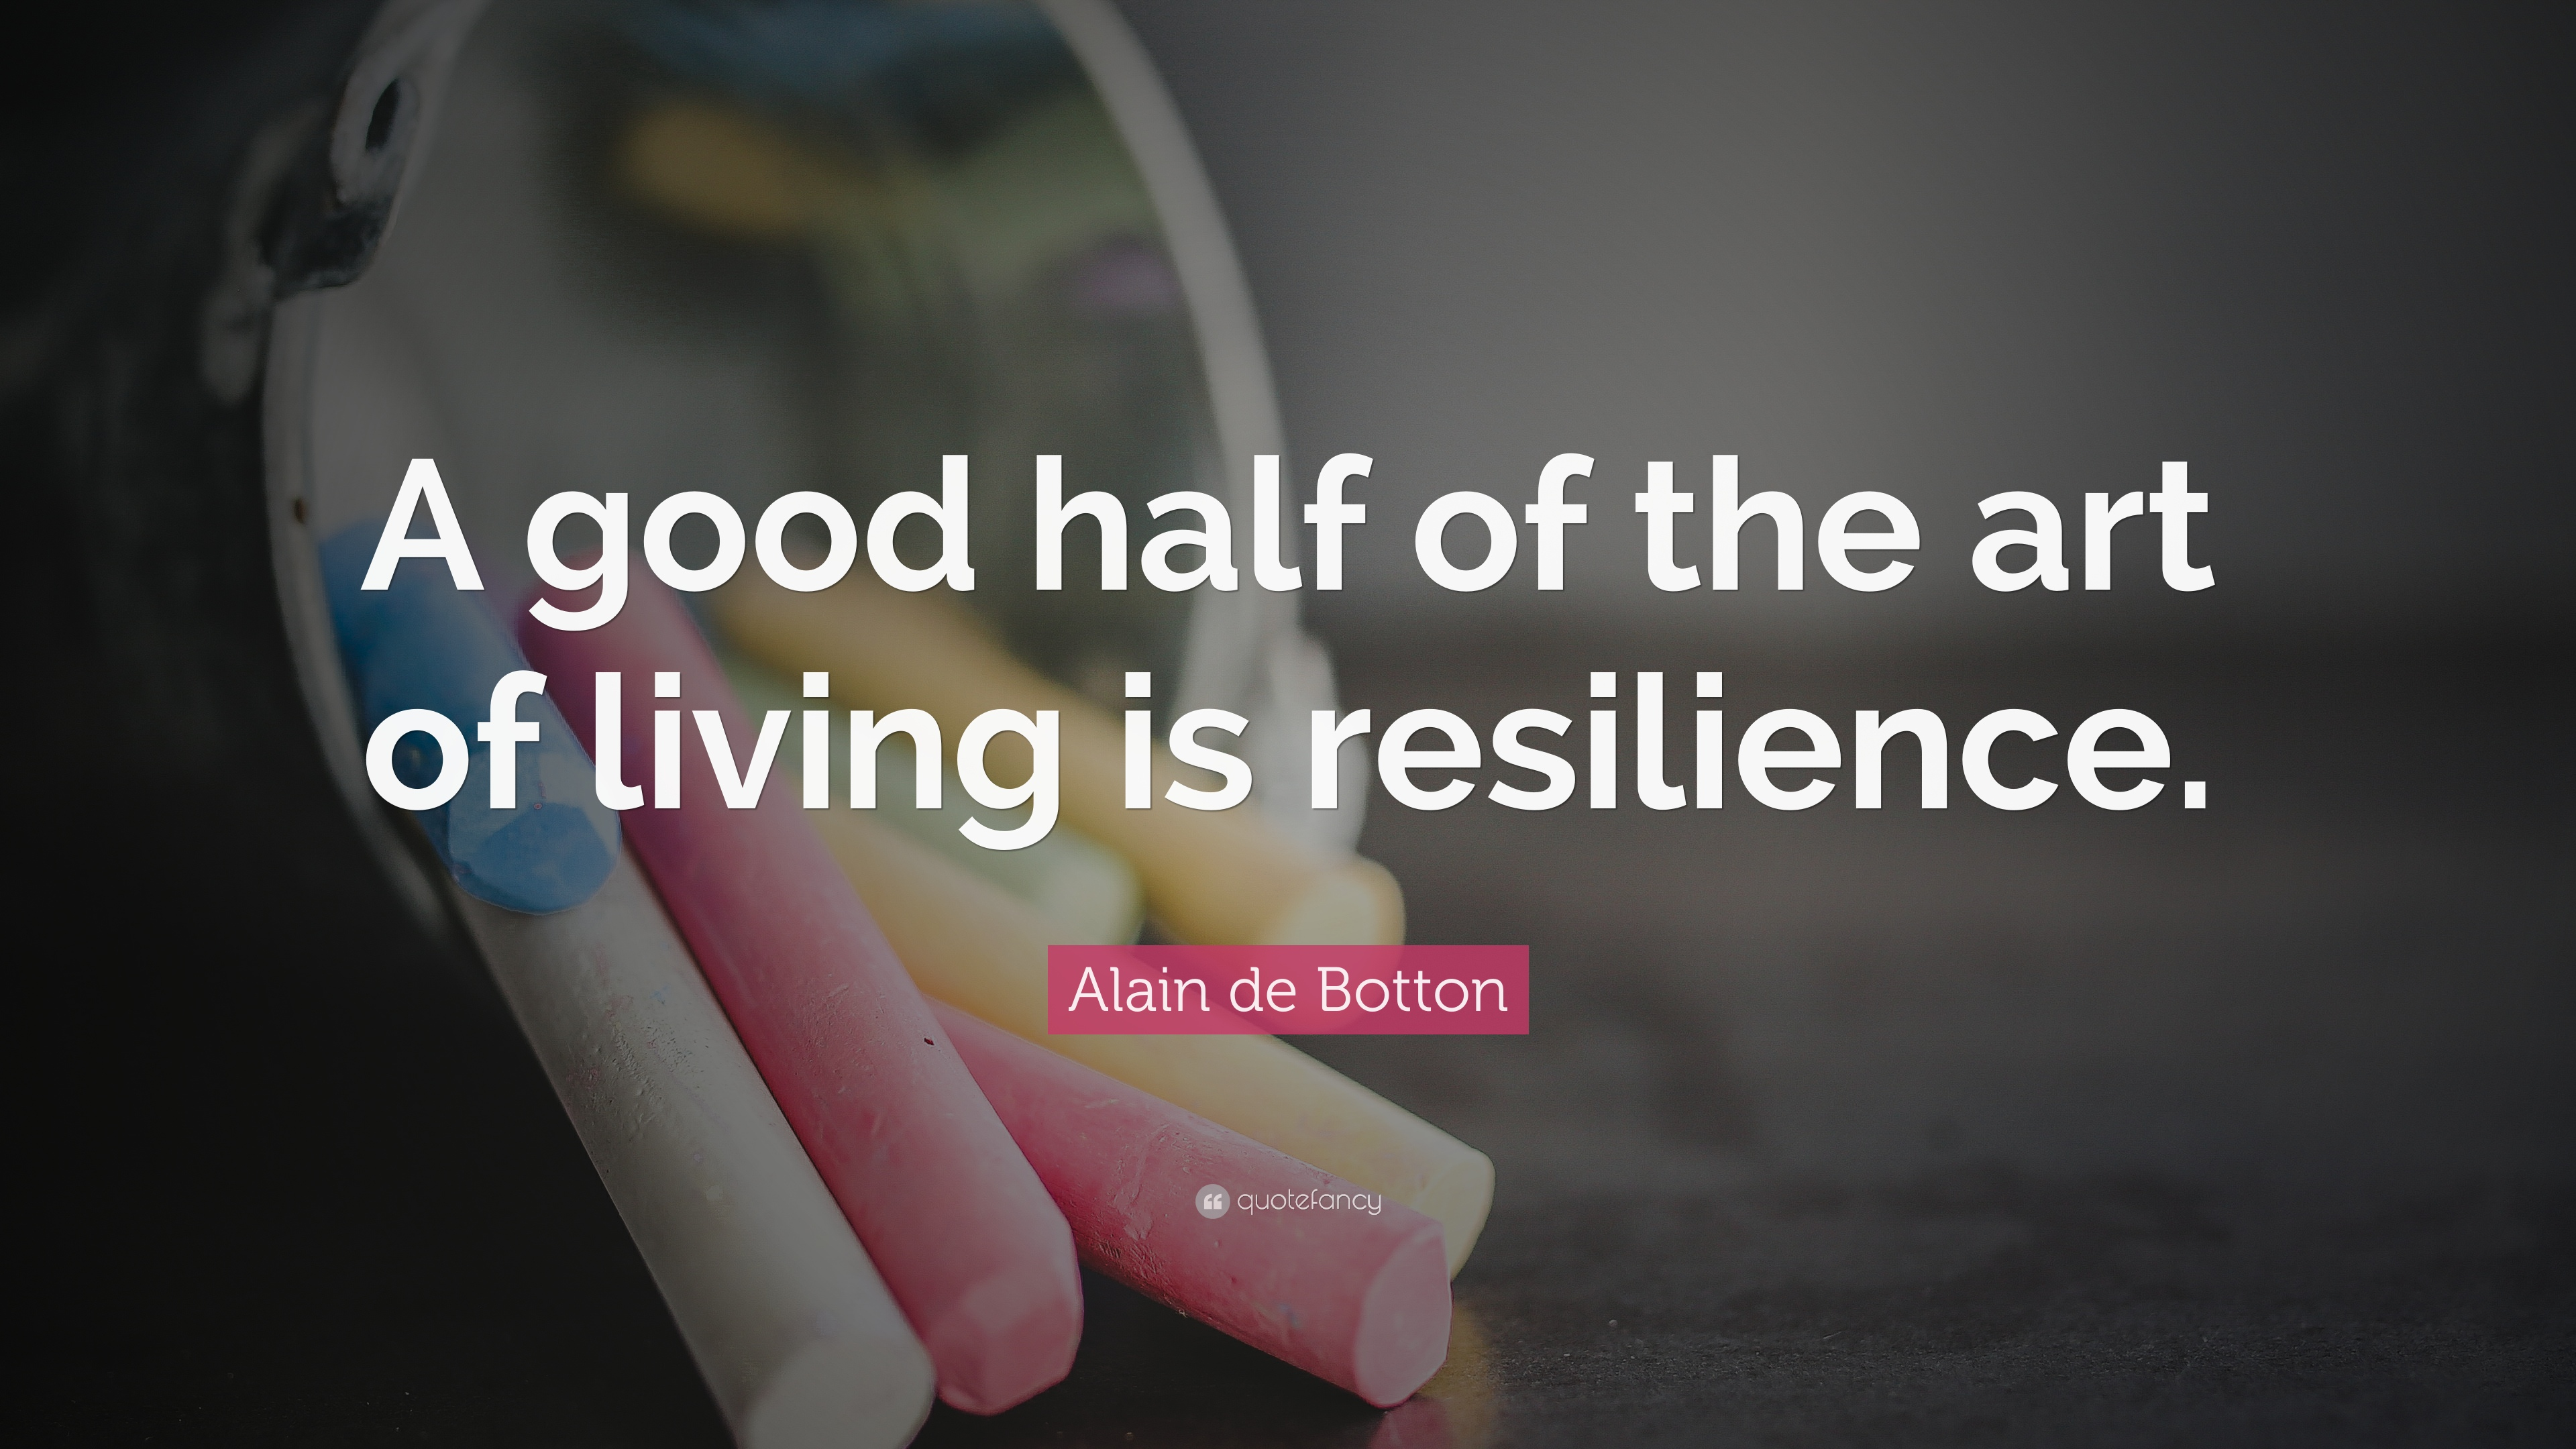 Alain De Botton Quote A Good Half Of The Art Of Living Is Resilience 11 Wallpapers Quotefancy